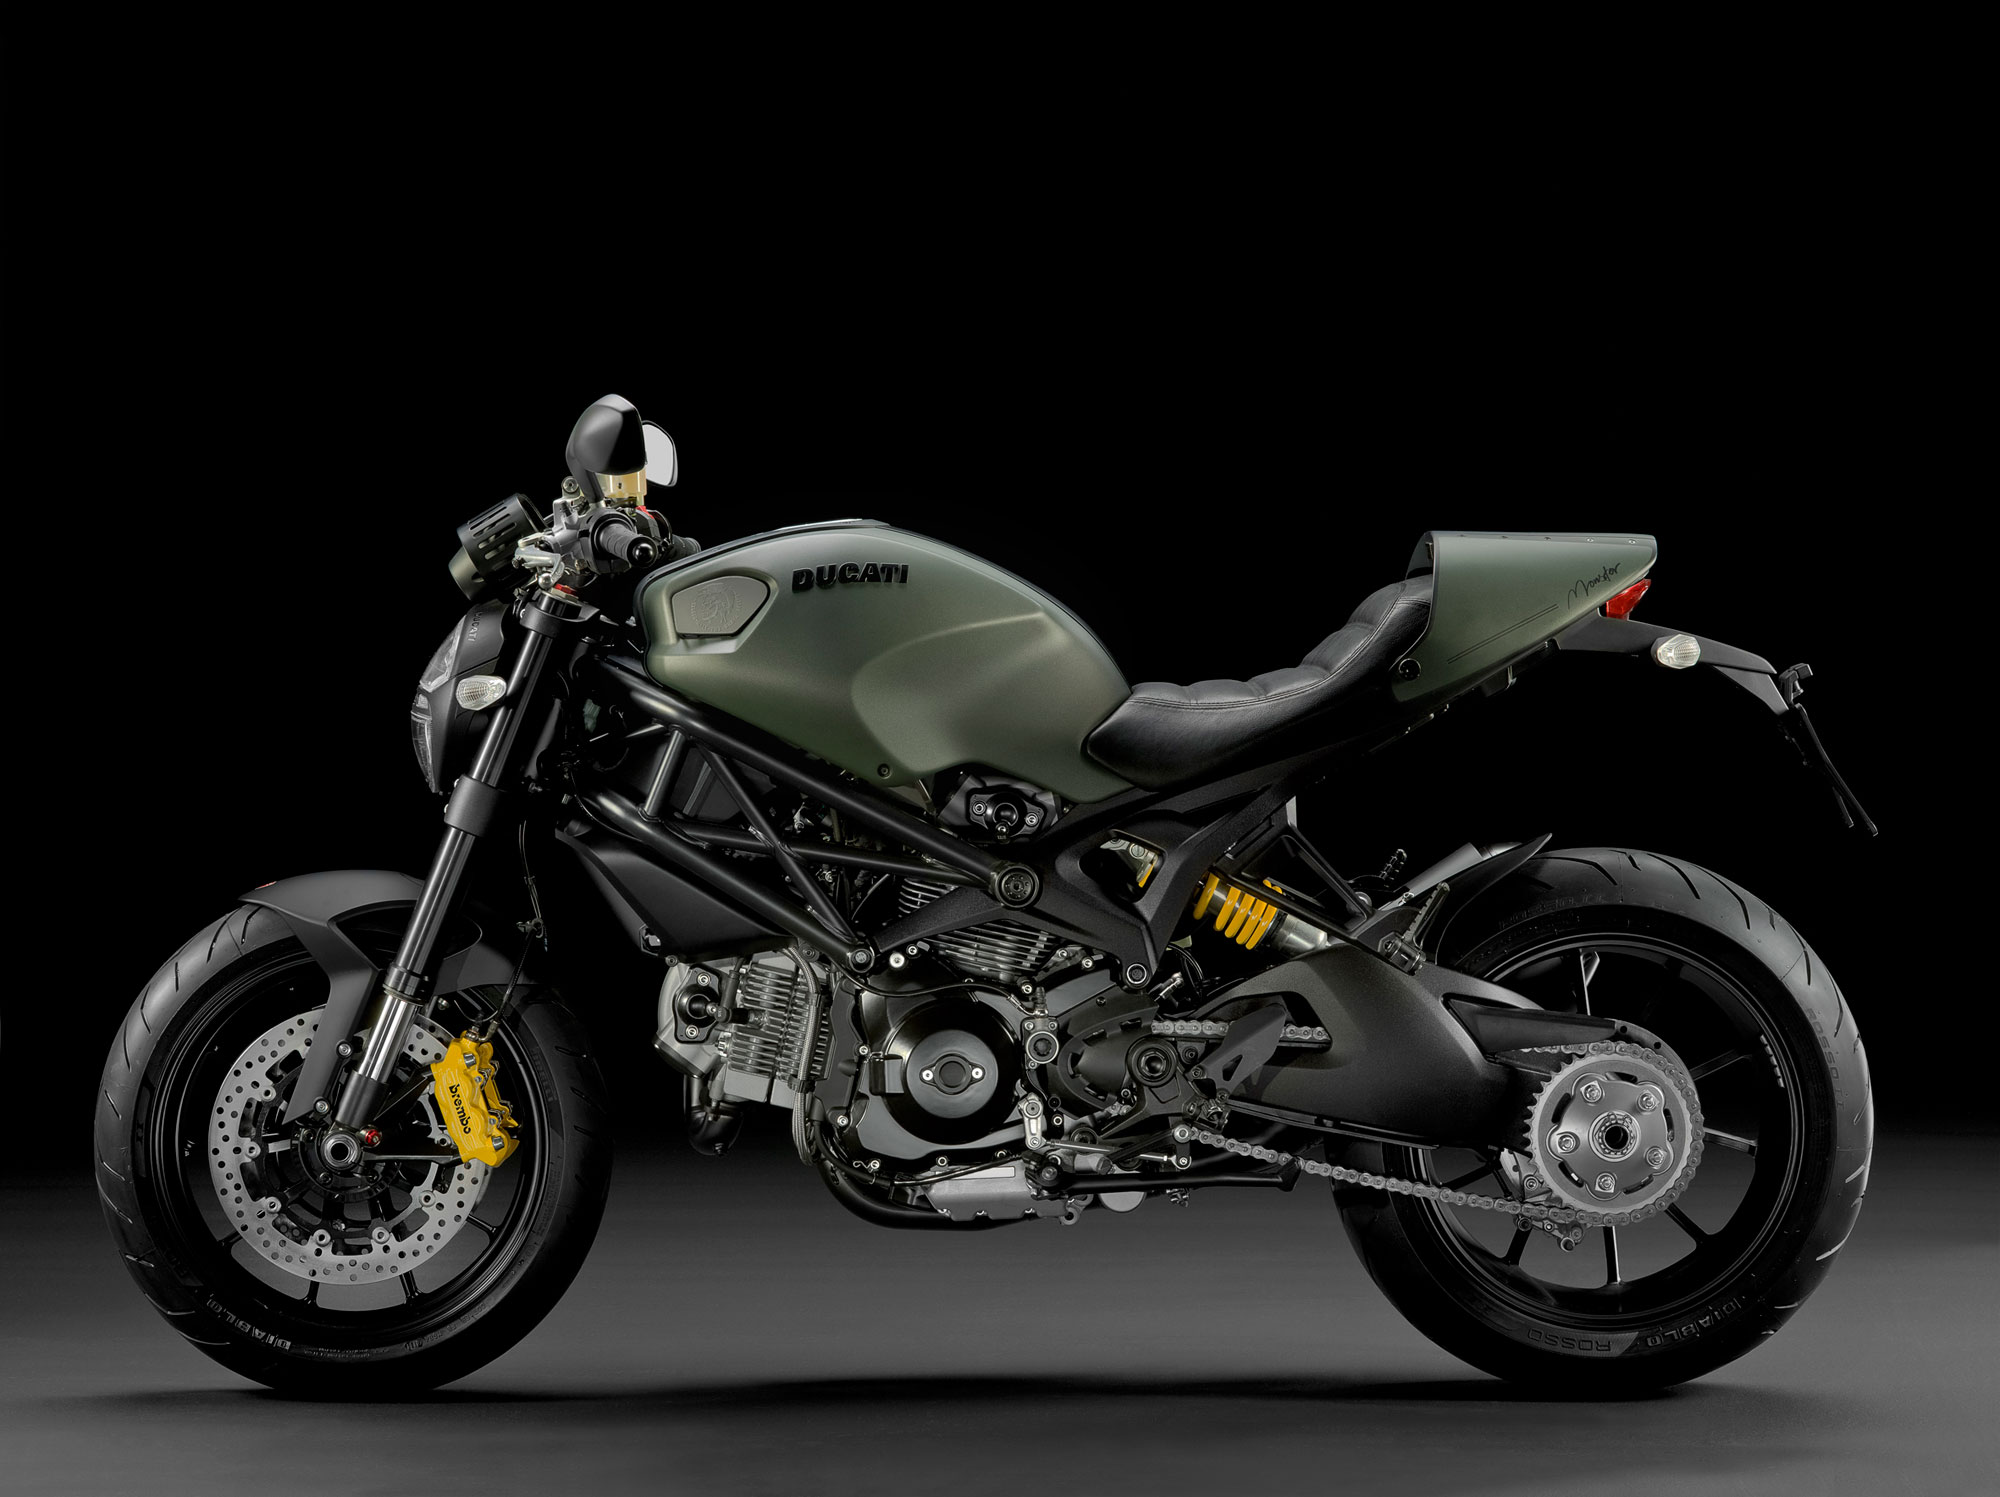 ducati monster 1100 evo diesel specs 2012 2013 autoevolution. Black Bedroom Furniture Sets. Home Design Ideas